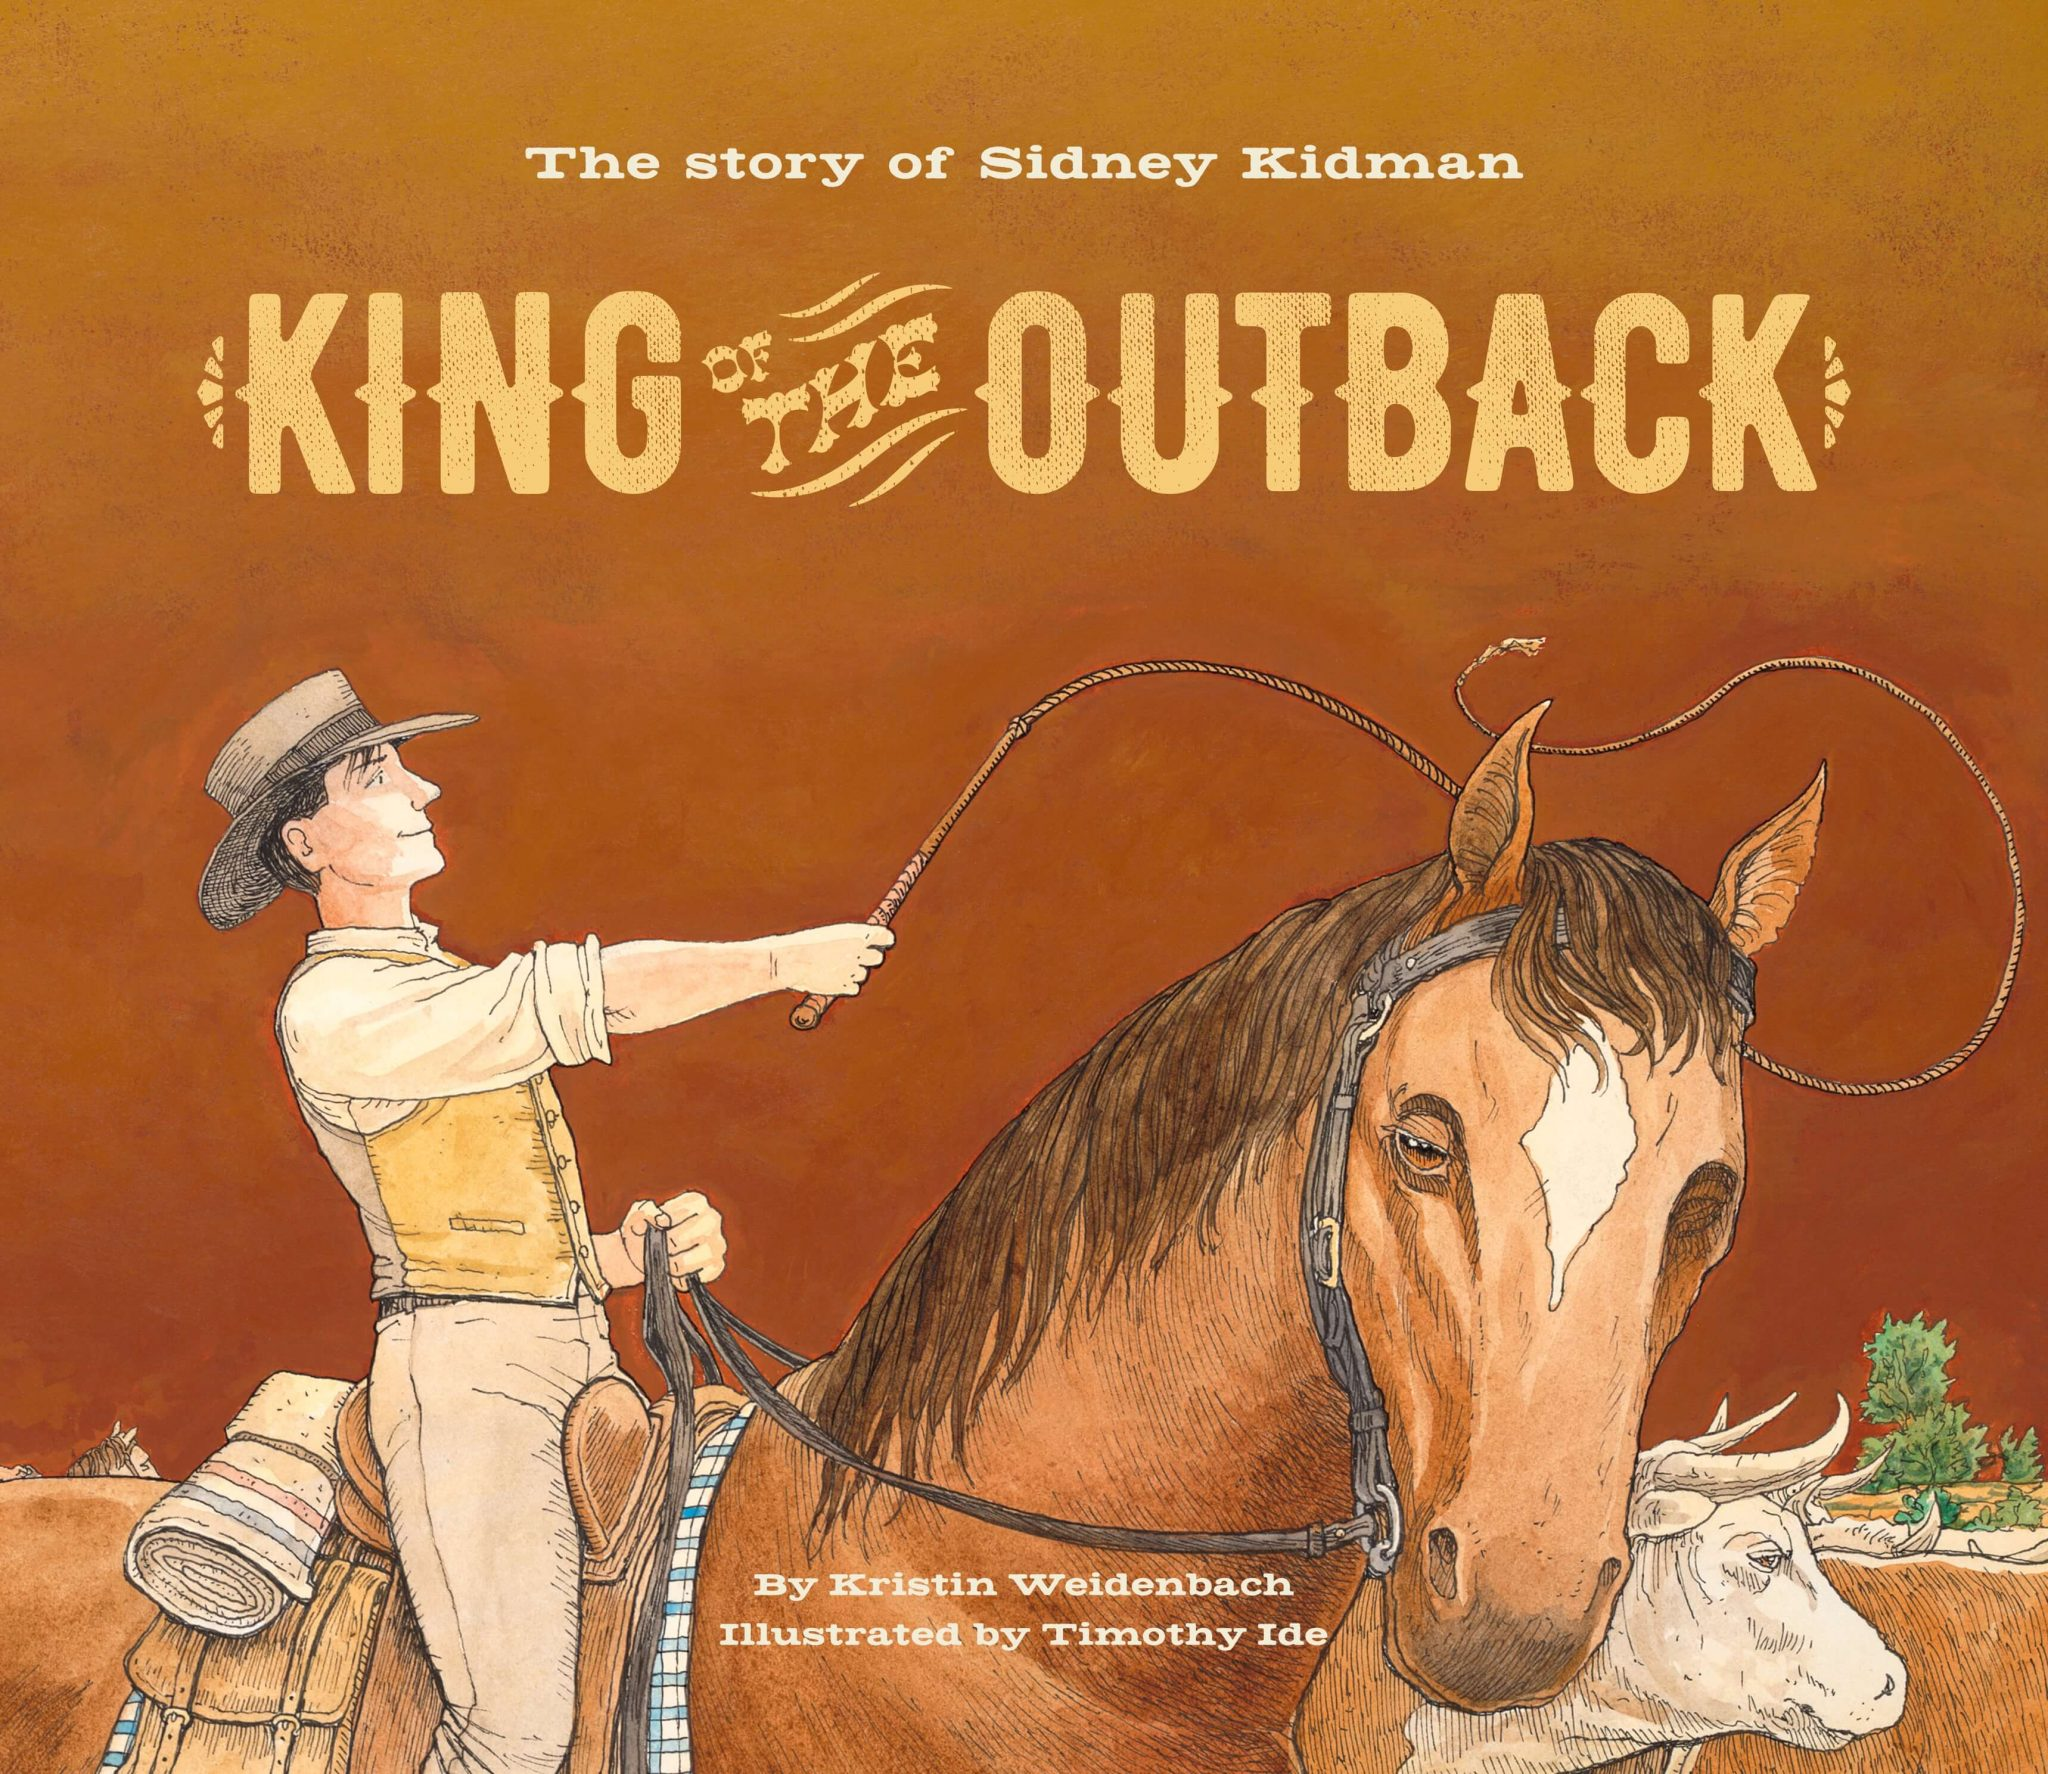 King of the Outback - Kristin Weidenbach